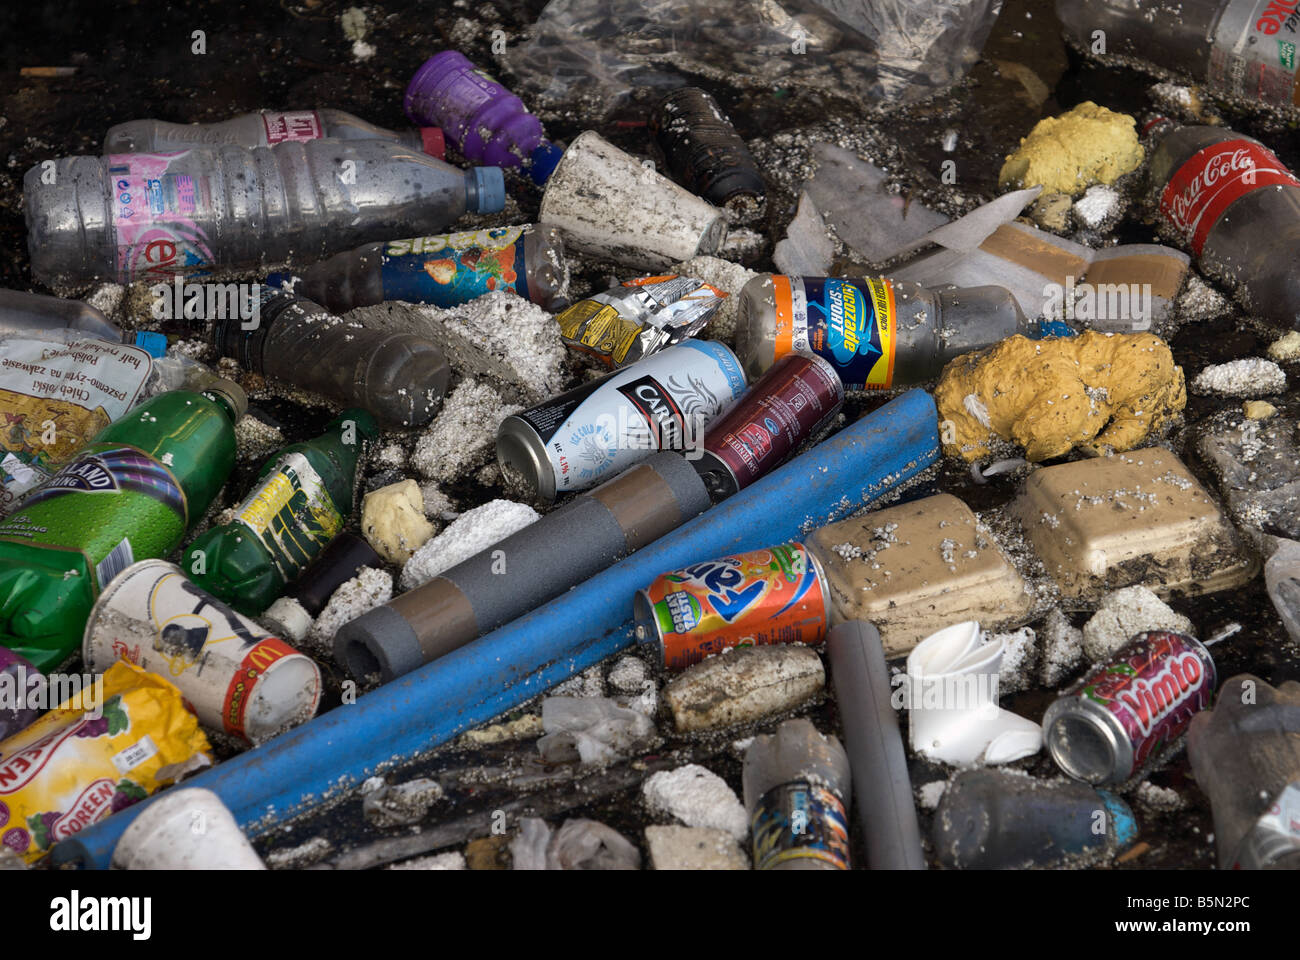 Rubbish floating in the river Orwell at wet dock, Ipswich, Suffolk, UK. - Stock Image